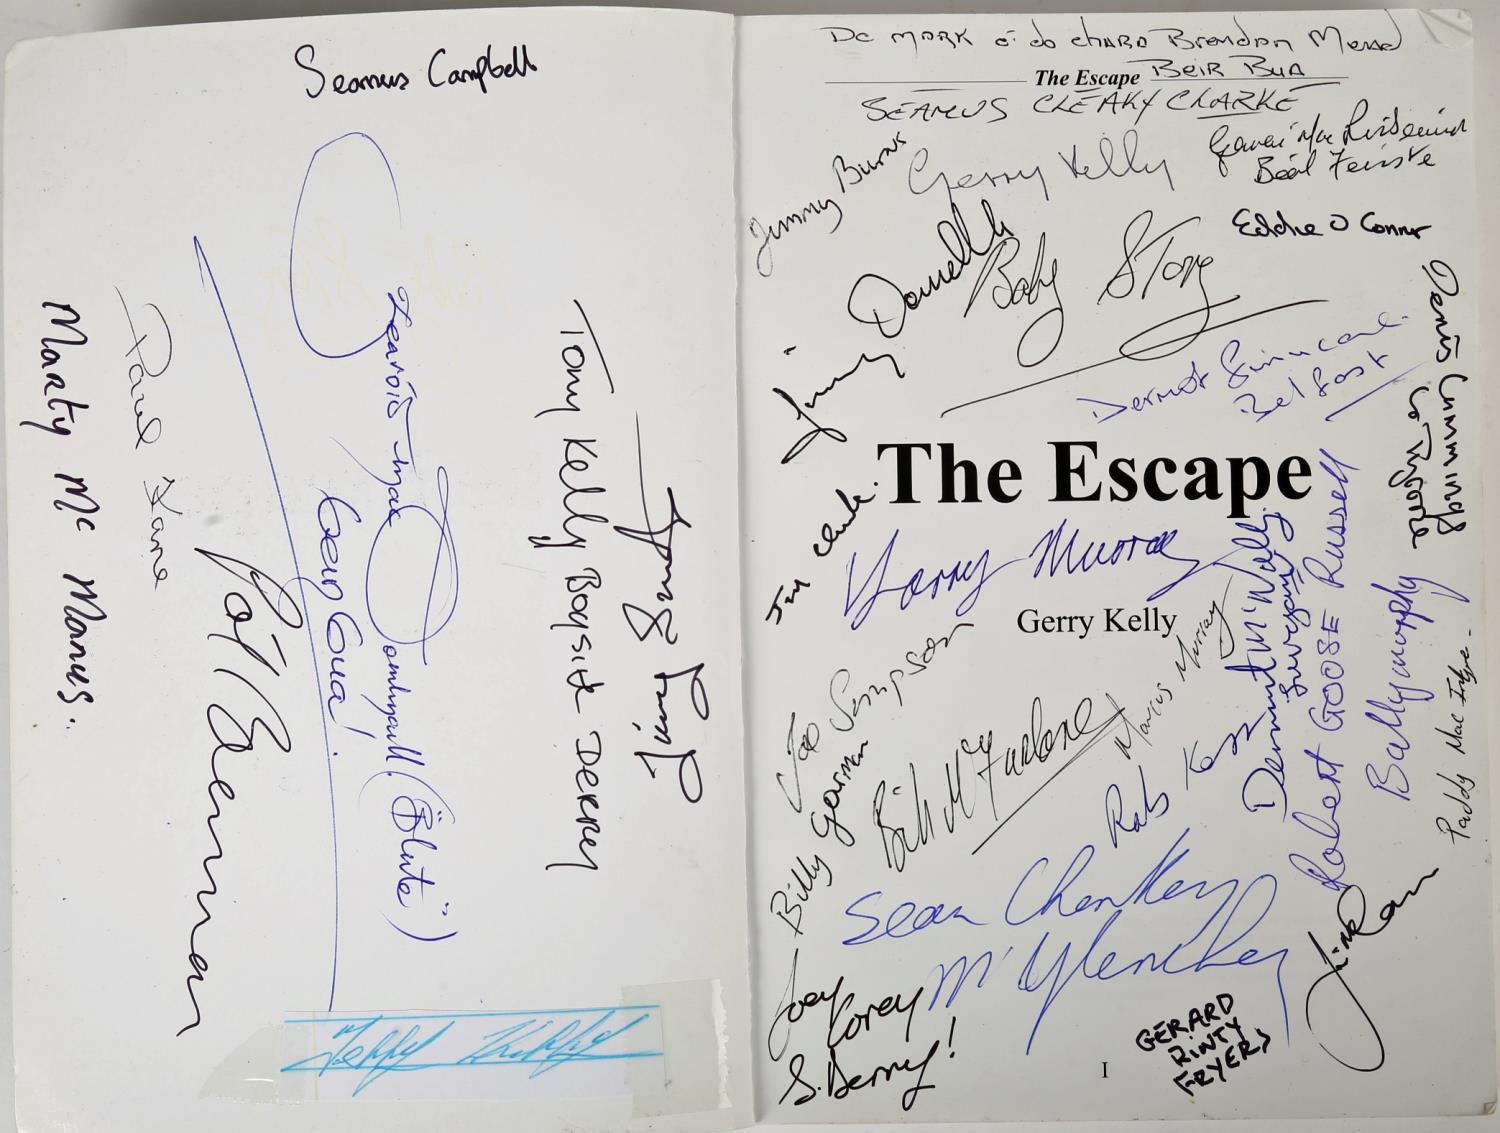 Kelly, Gerry. The Escape: The Inside Story of the 1983 Escape from Long Kesh Prison, signed by the